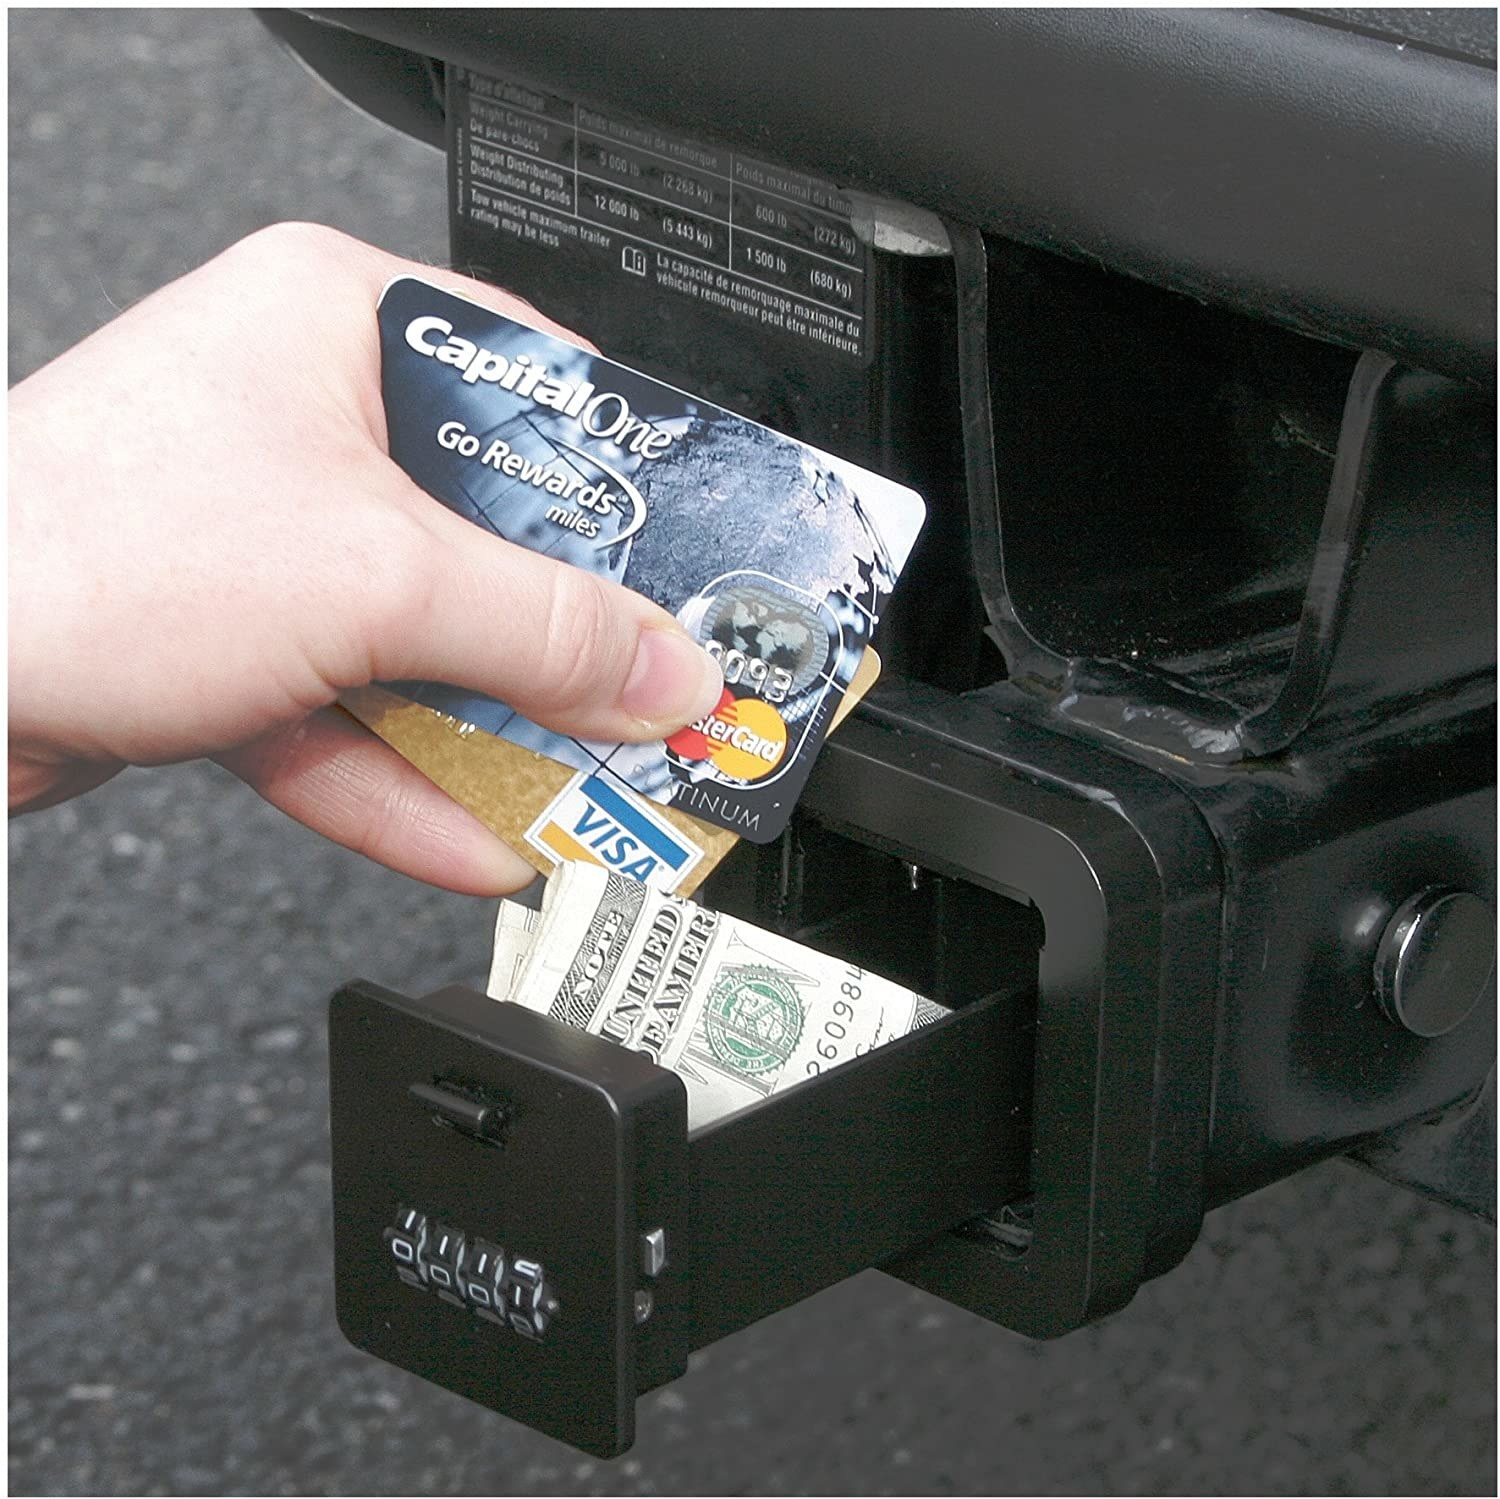 A person putting credit cards and money into their safe